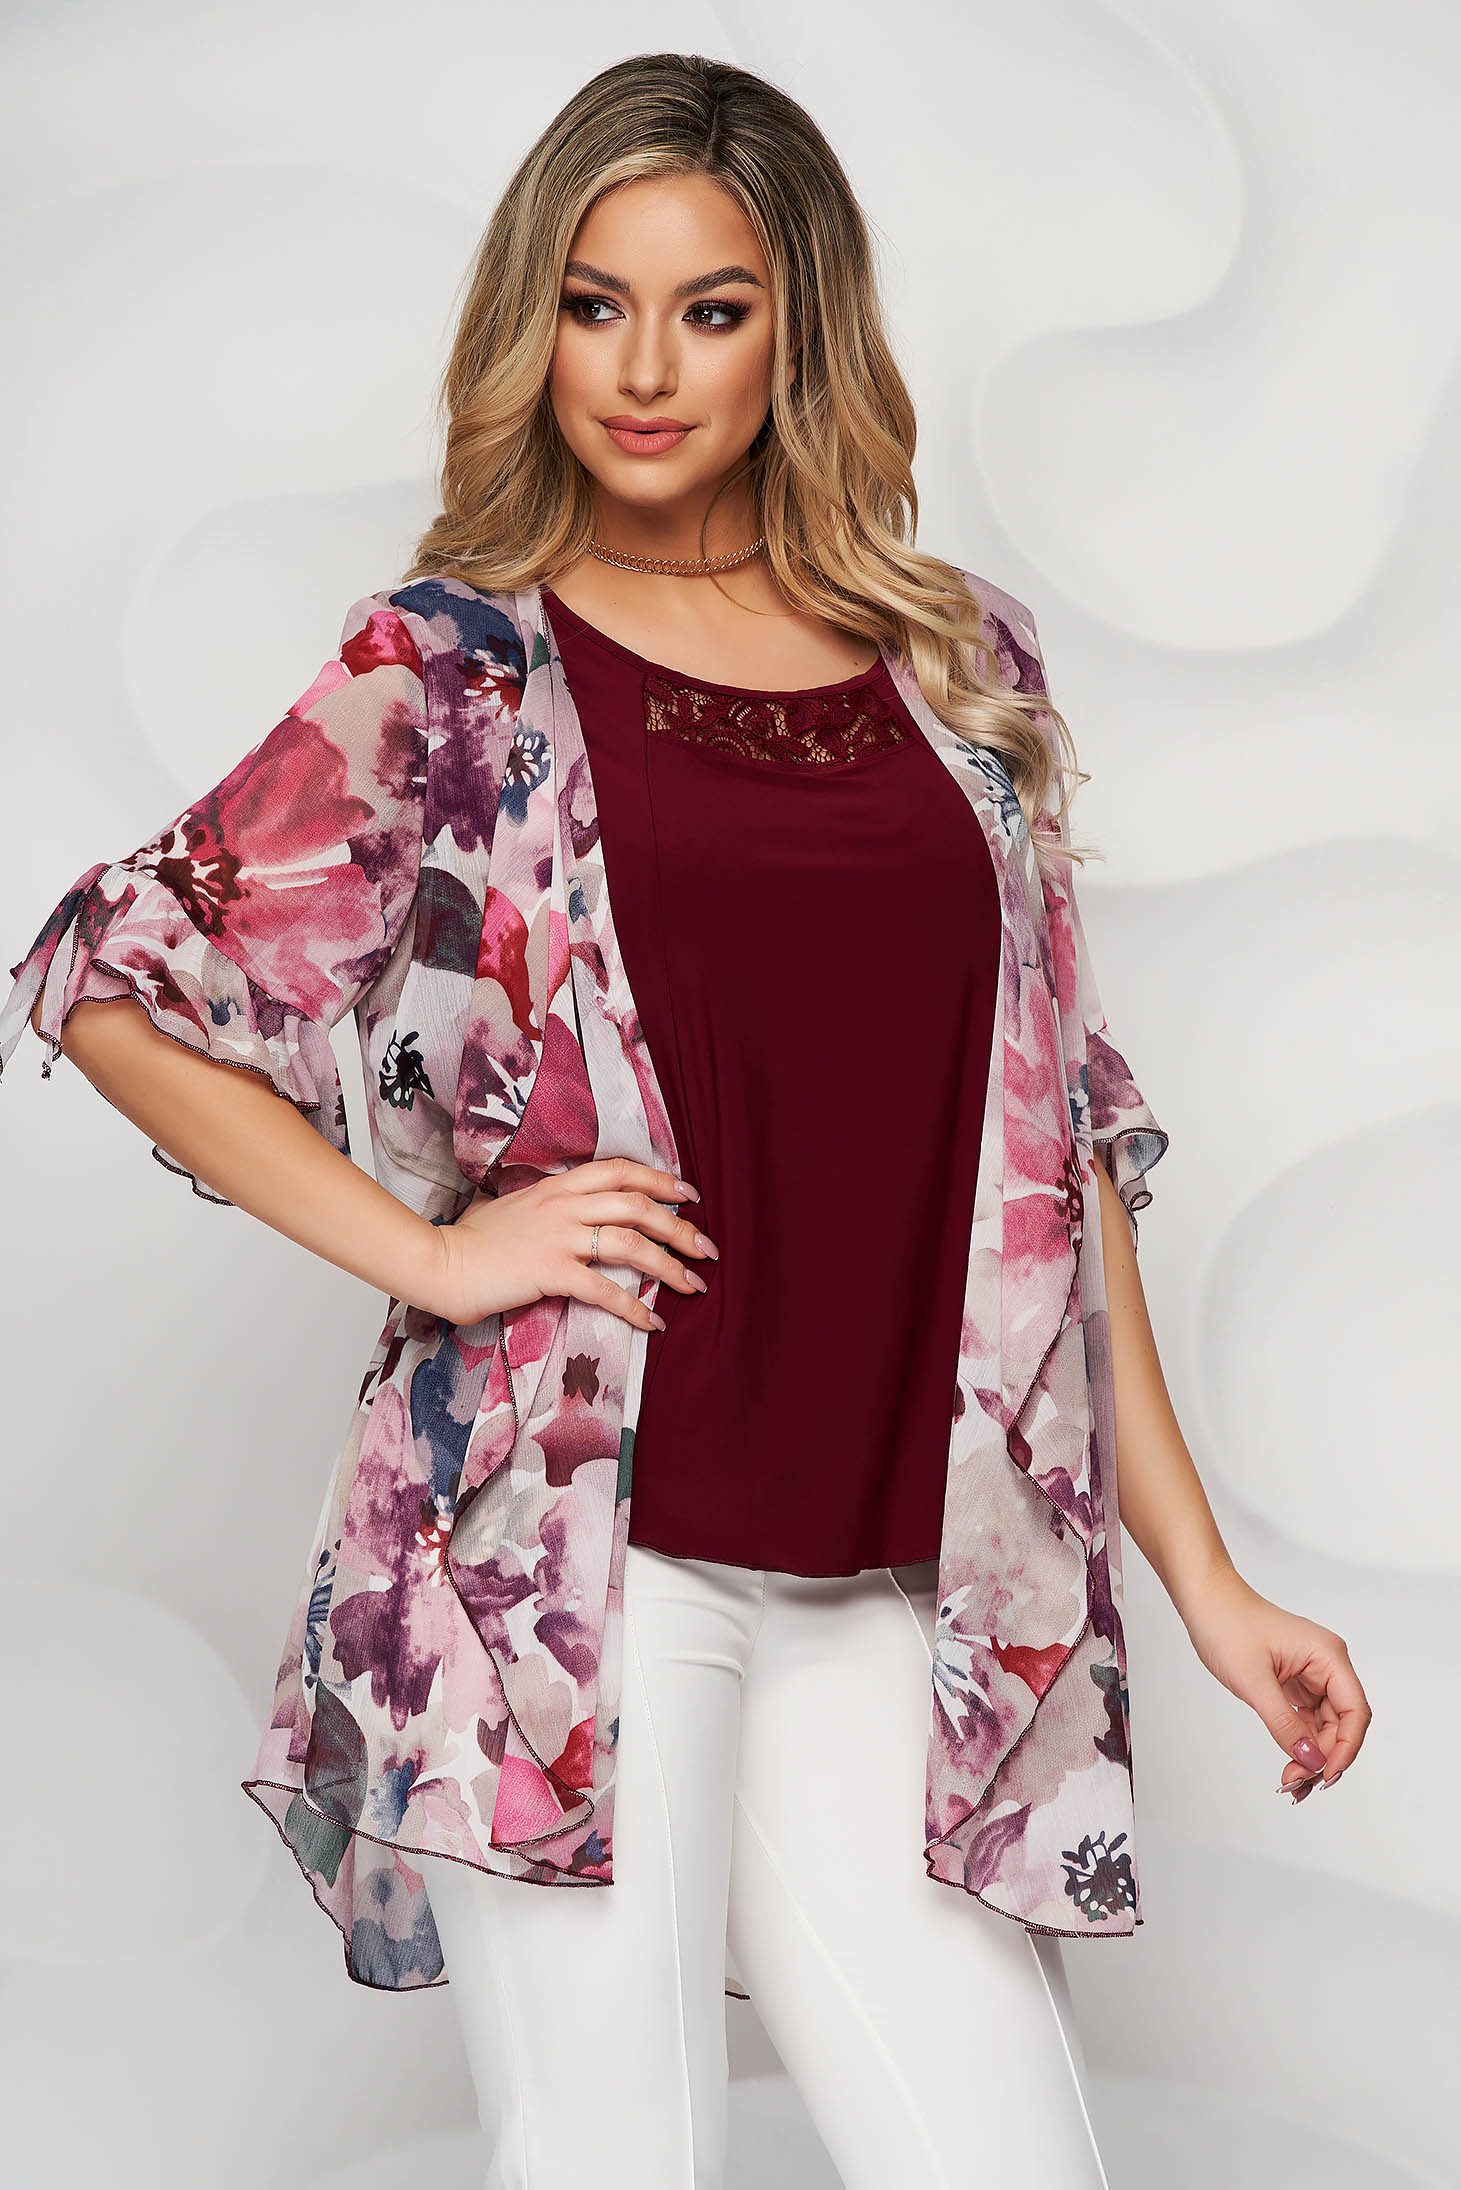 Burgundy women`s blouse with floral print with lace details